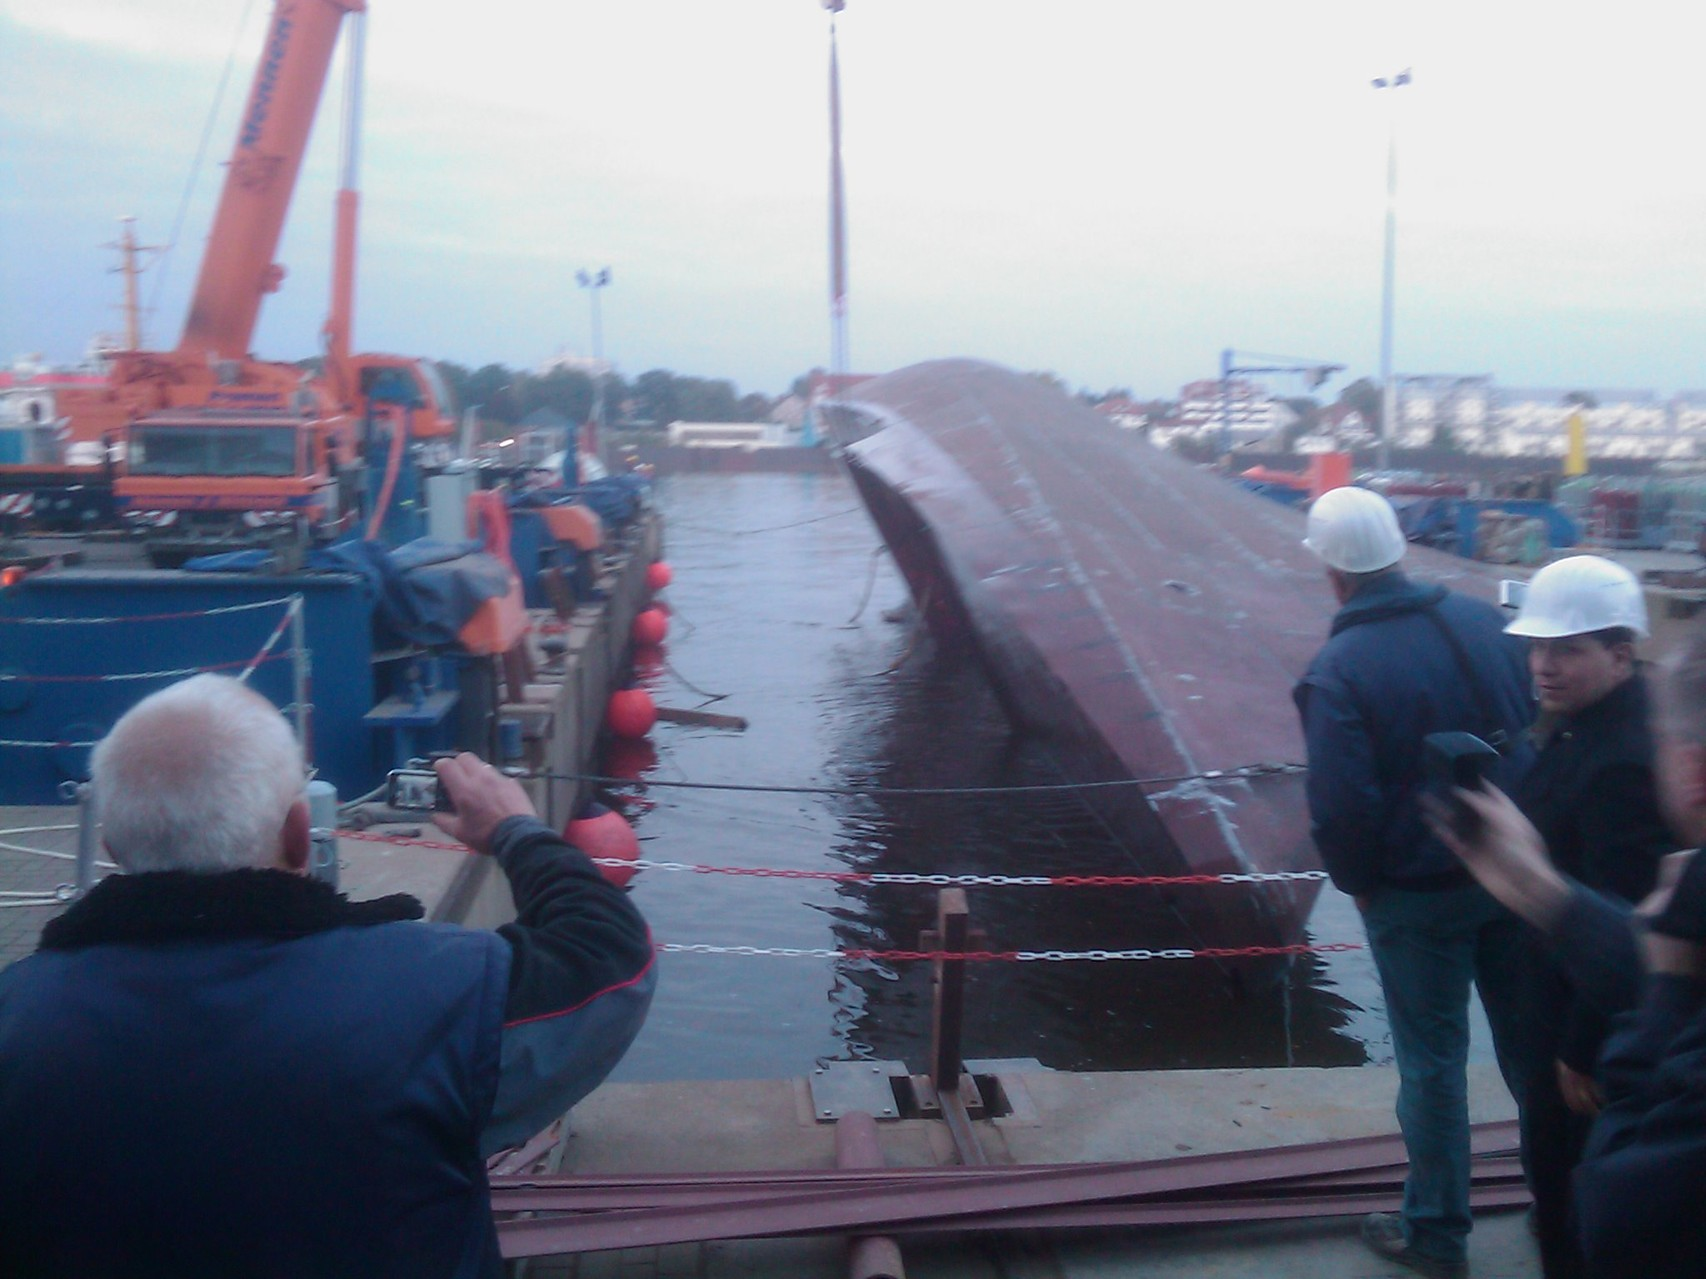 Hull turn over of the 40m patrol boat